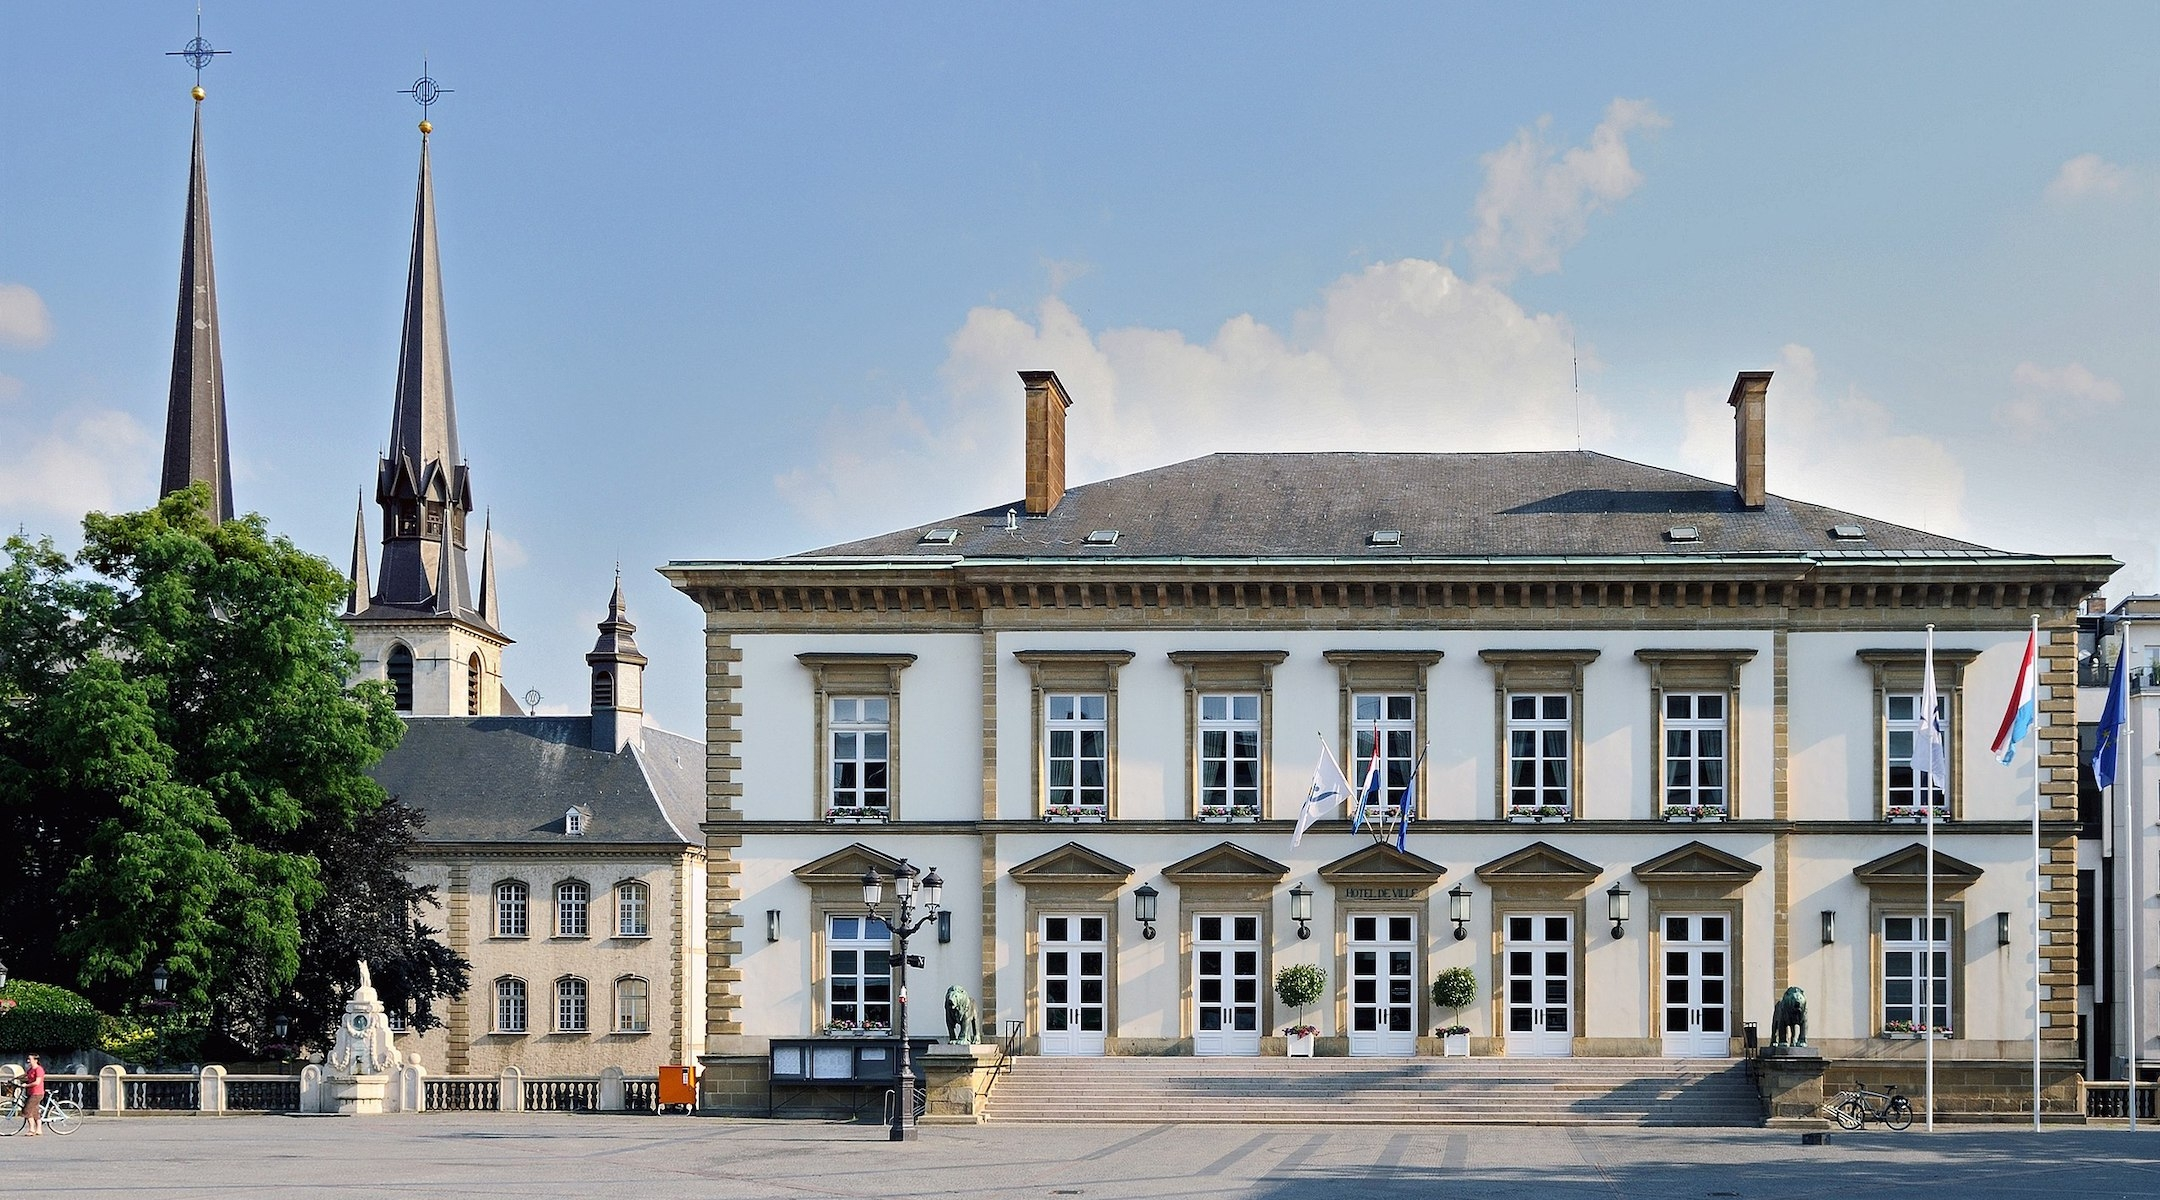 In first, Luxembourg offers $1.2 million in symbolic compensation to noncitizen Holocaust victims